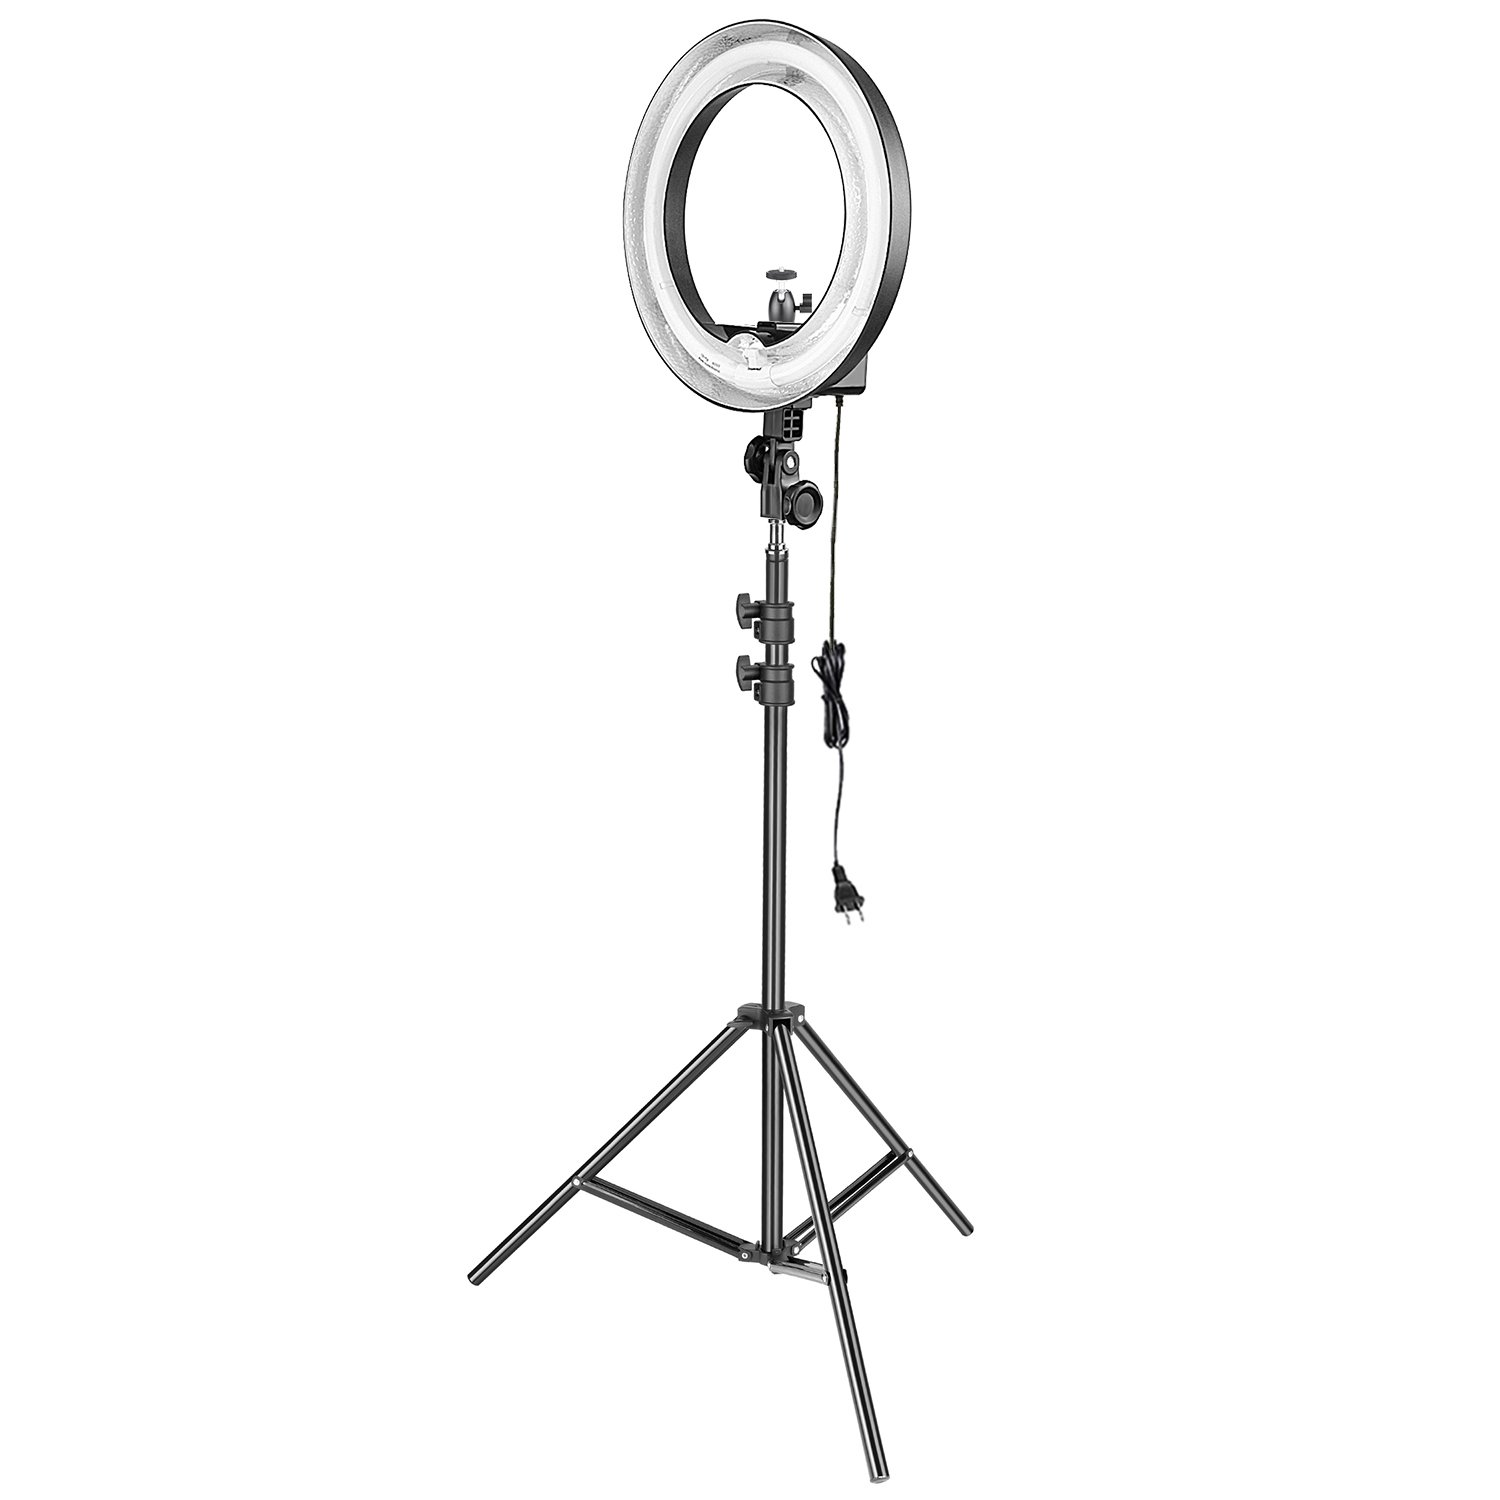 Neewer 14-inch 50W 5500K Camera Ring Light and Light Stand Lighting Kit - Dimmable Fluorescent Ring Light and 6.5 feet Light Stand with Ball Head Hotshoe Adapter for Camera Photo Studio YouTube Video